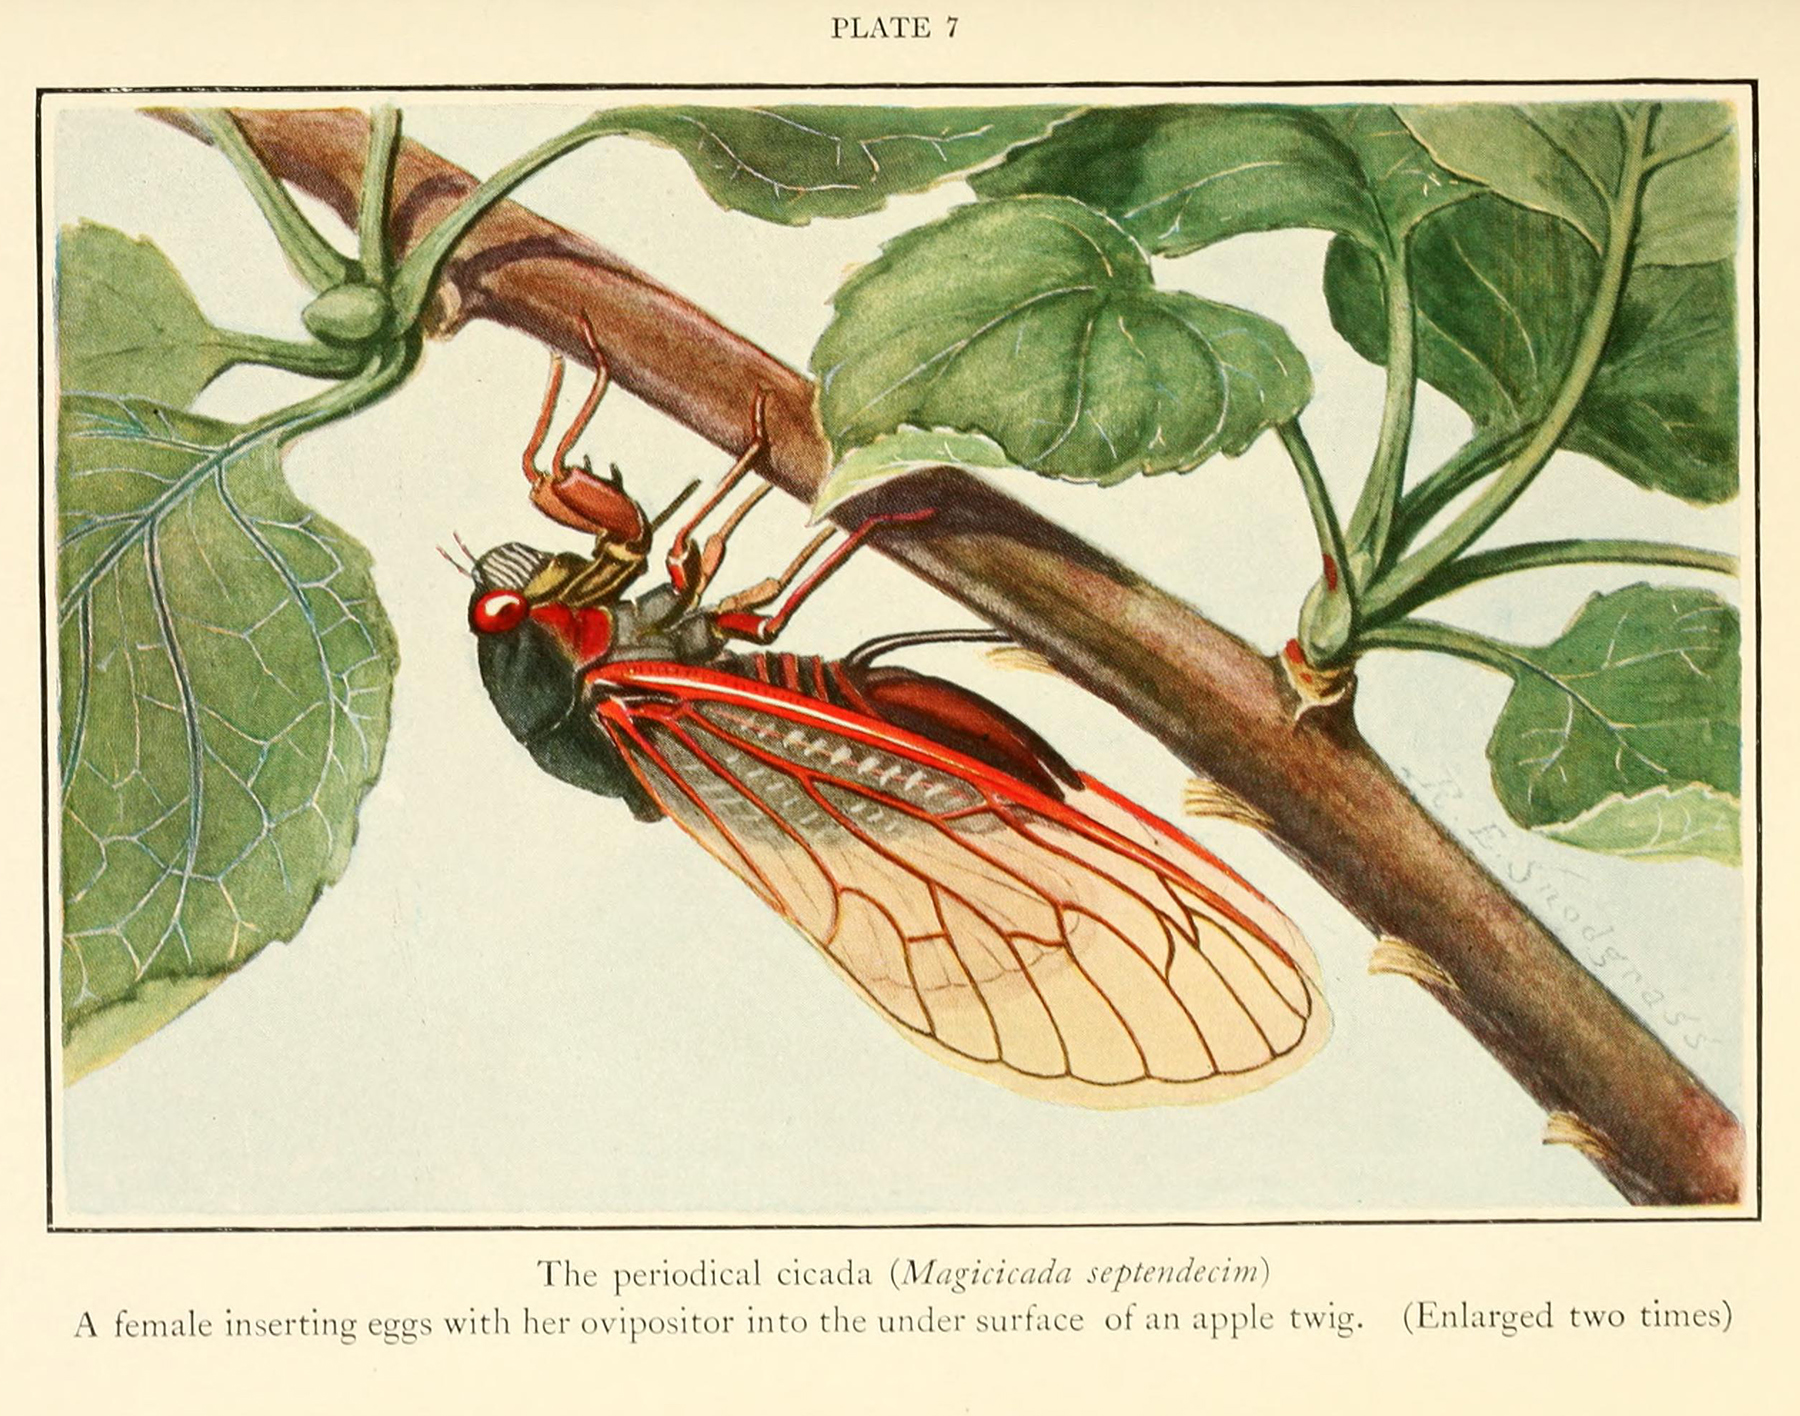 A female periodical cicada inserting eggs with her ovipositor into the under surface of an apple twig.